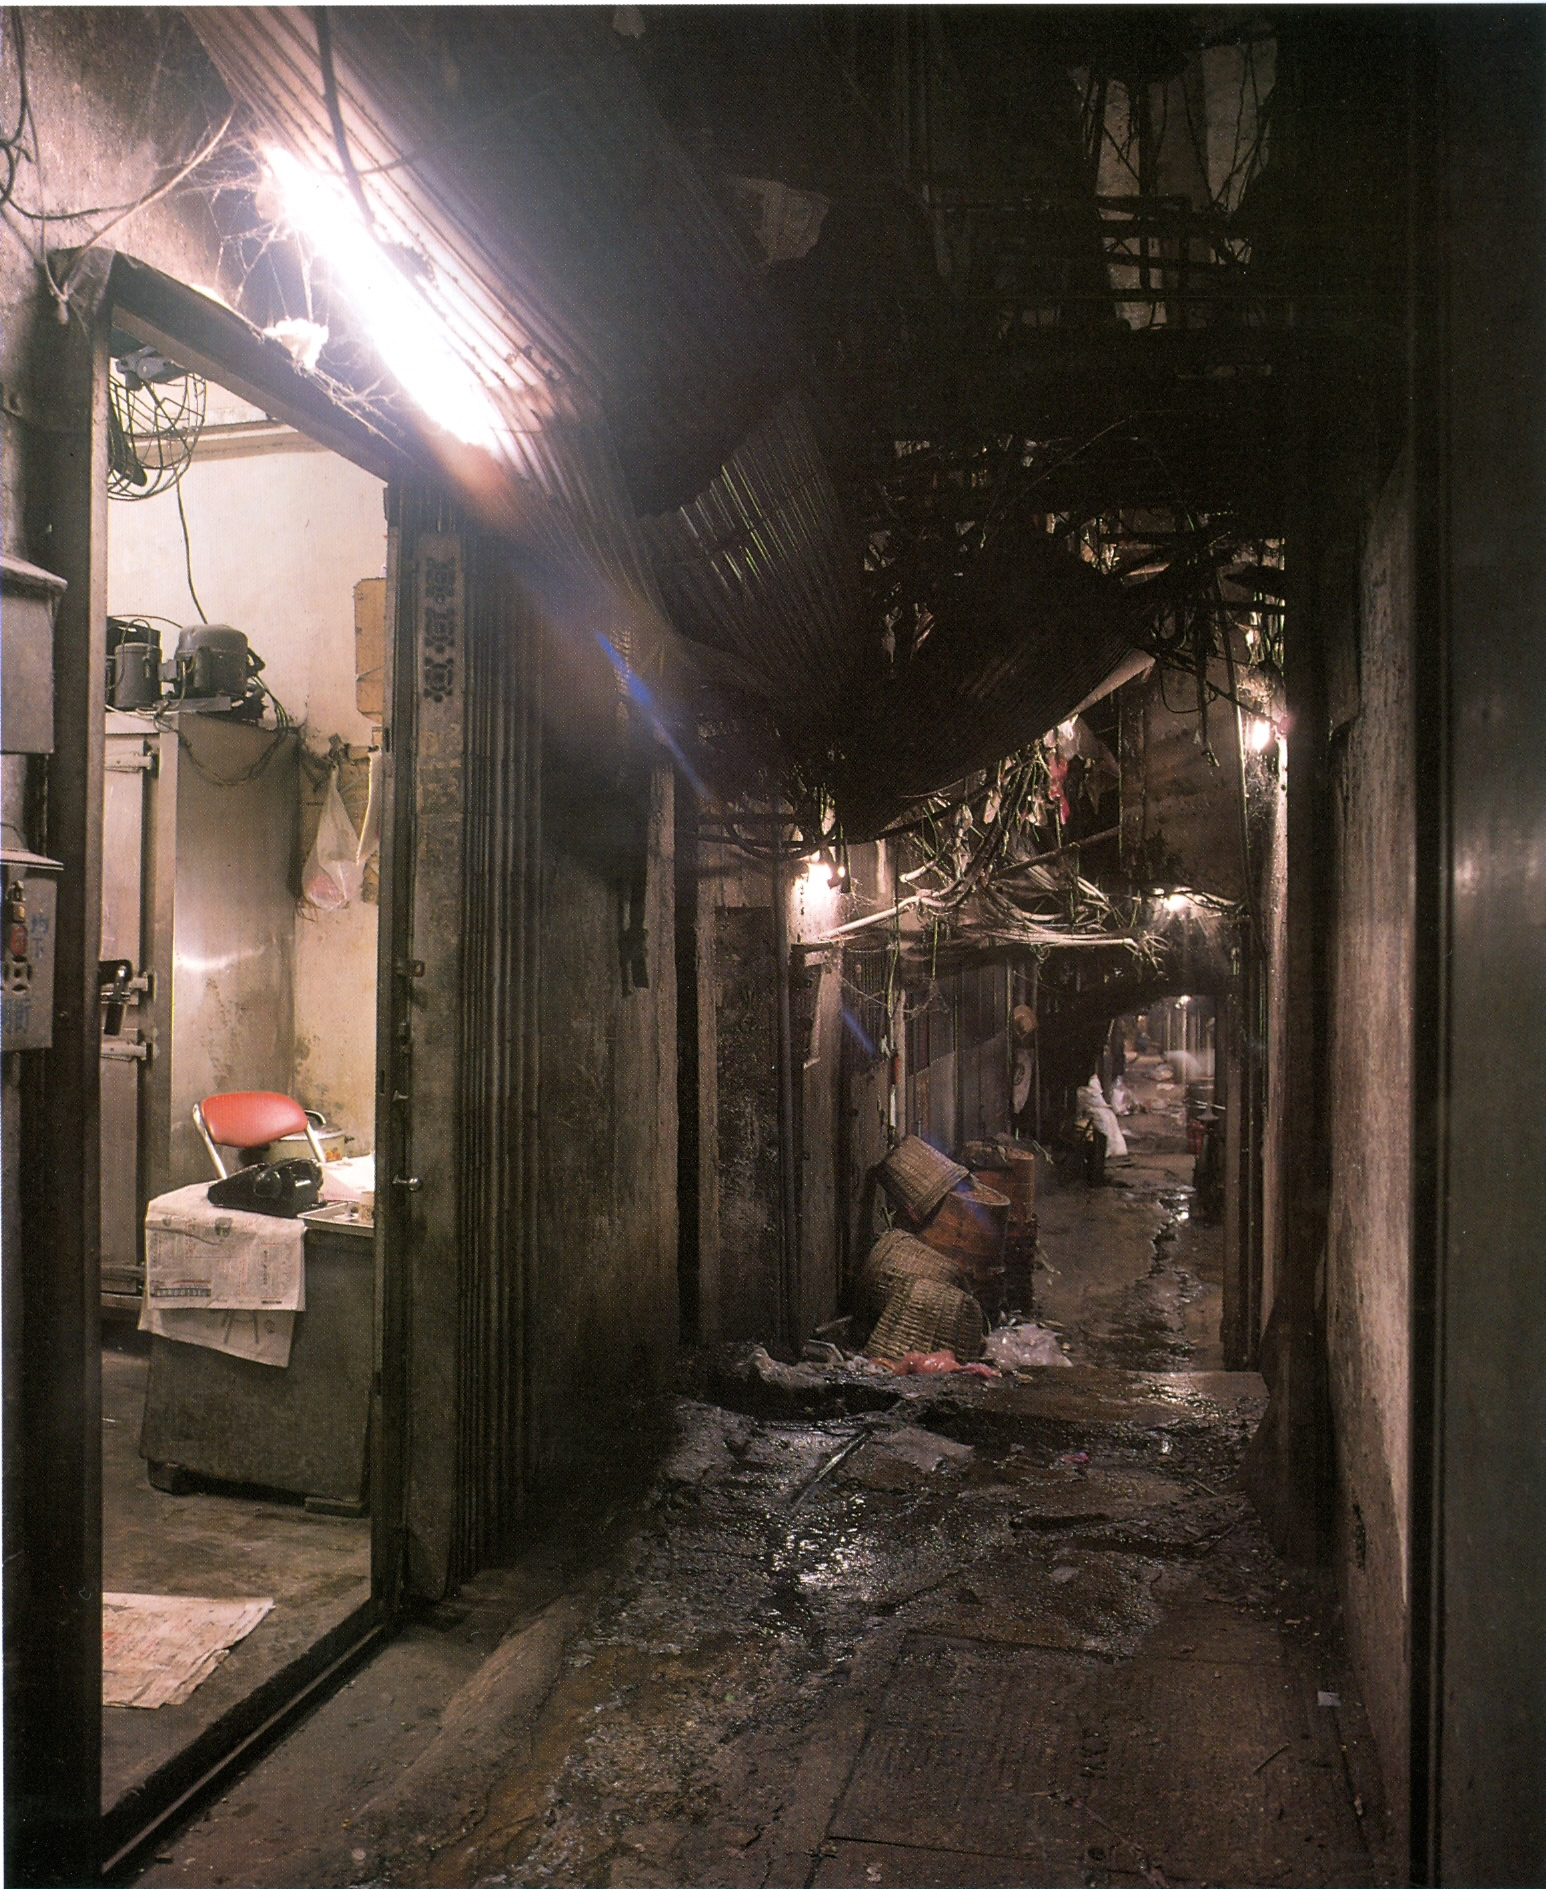 Self-organisation: the case of Kowloon Walled City ...